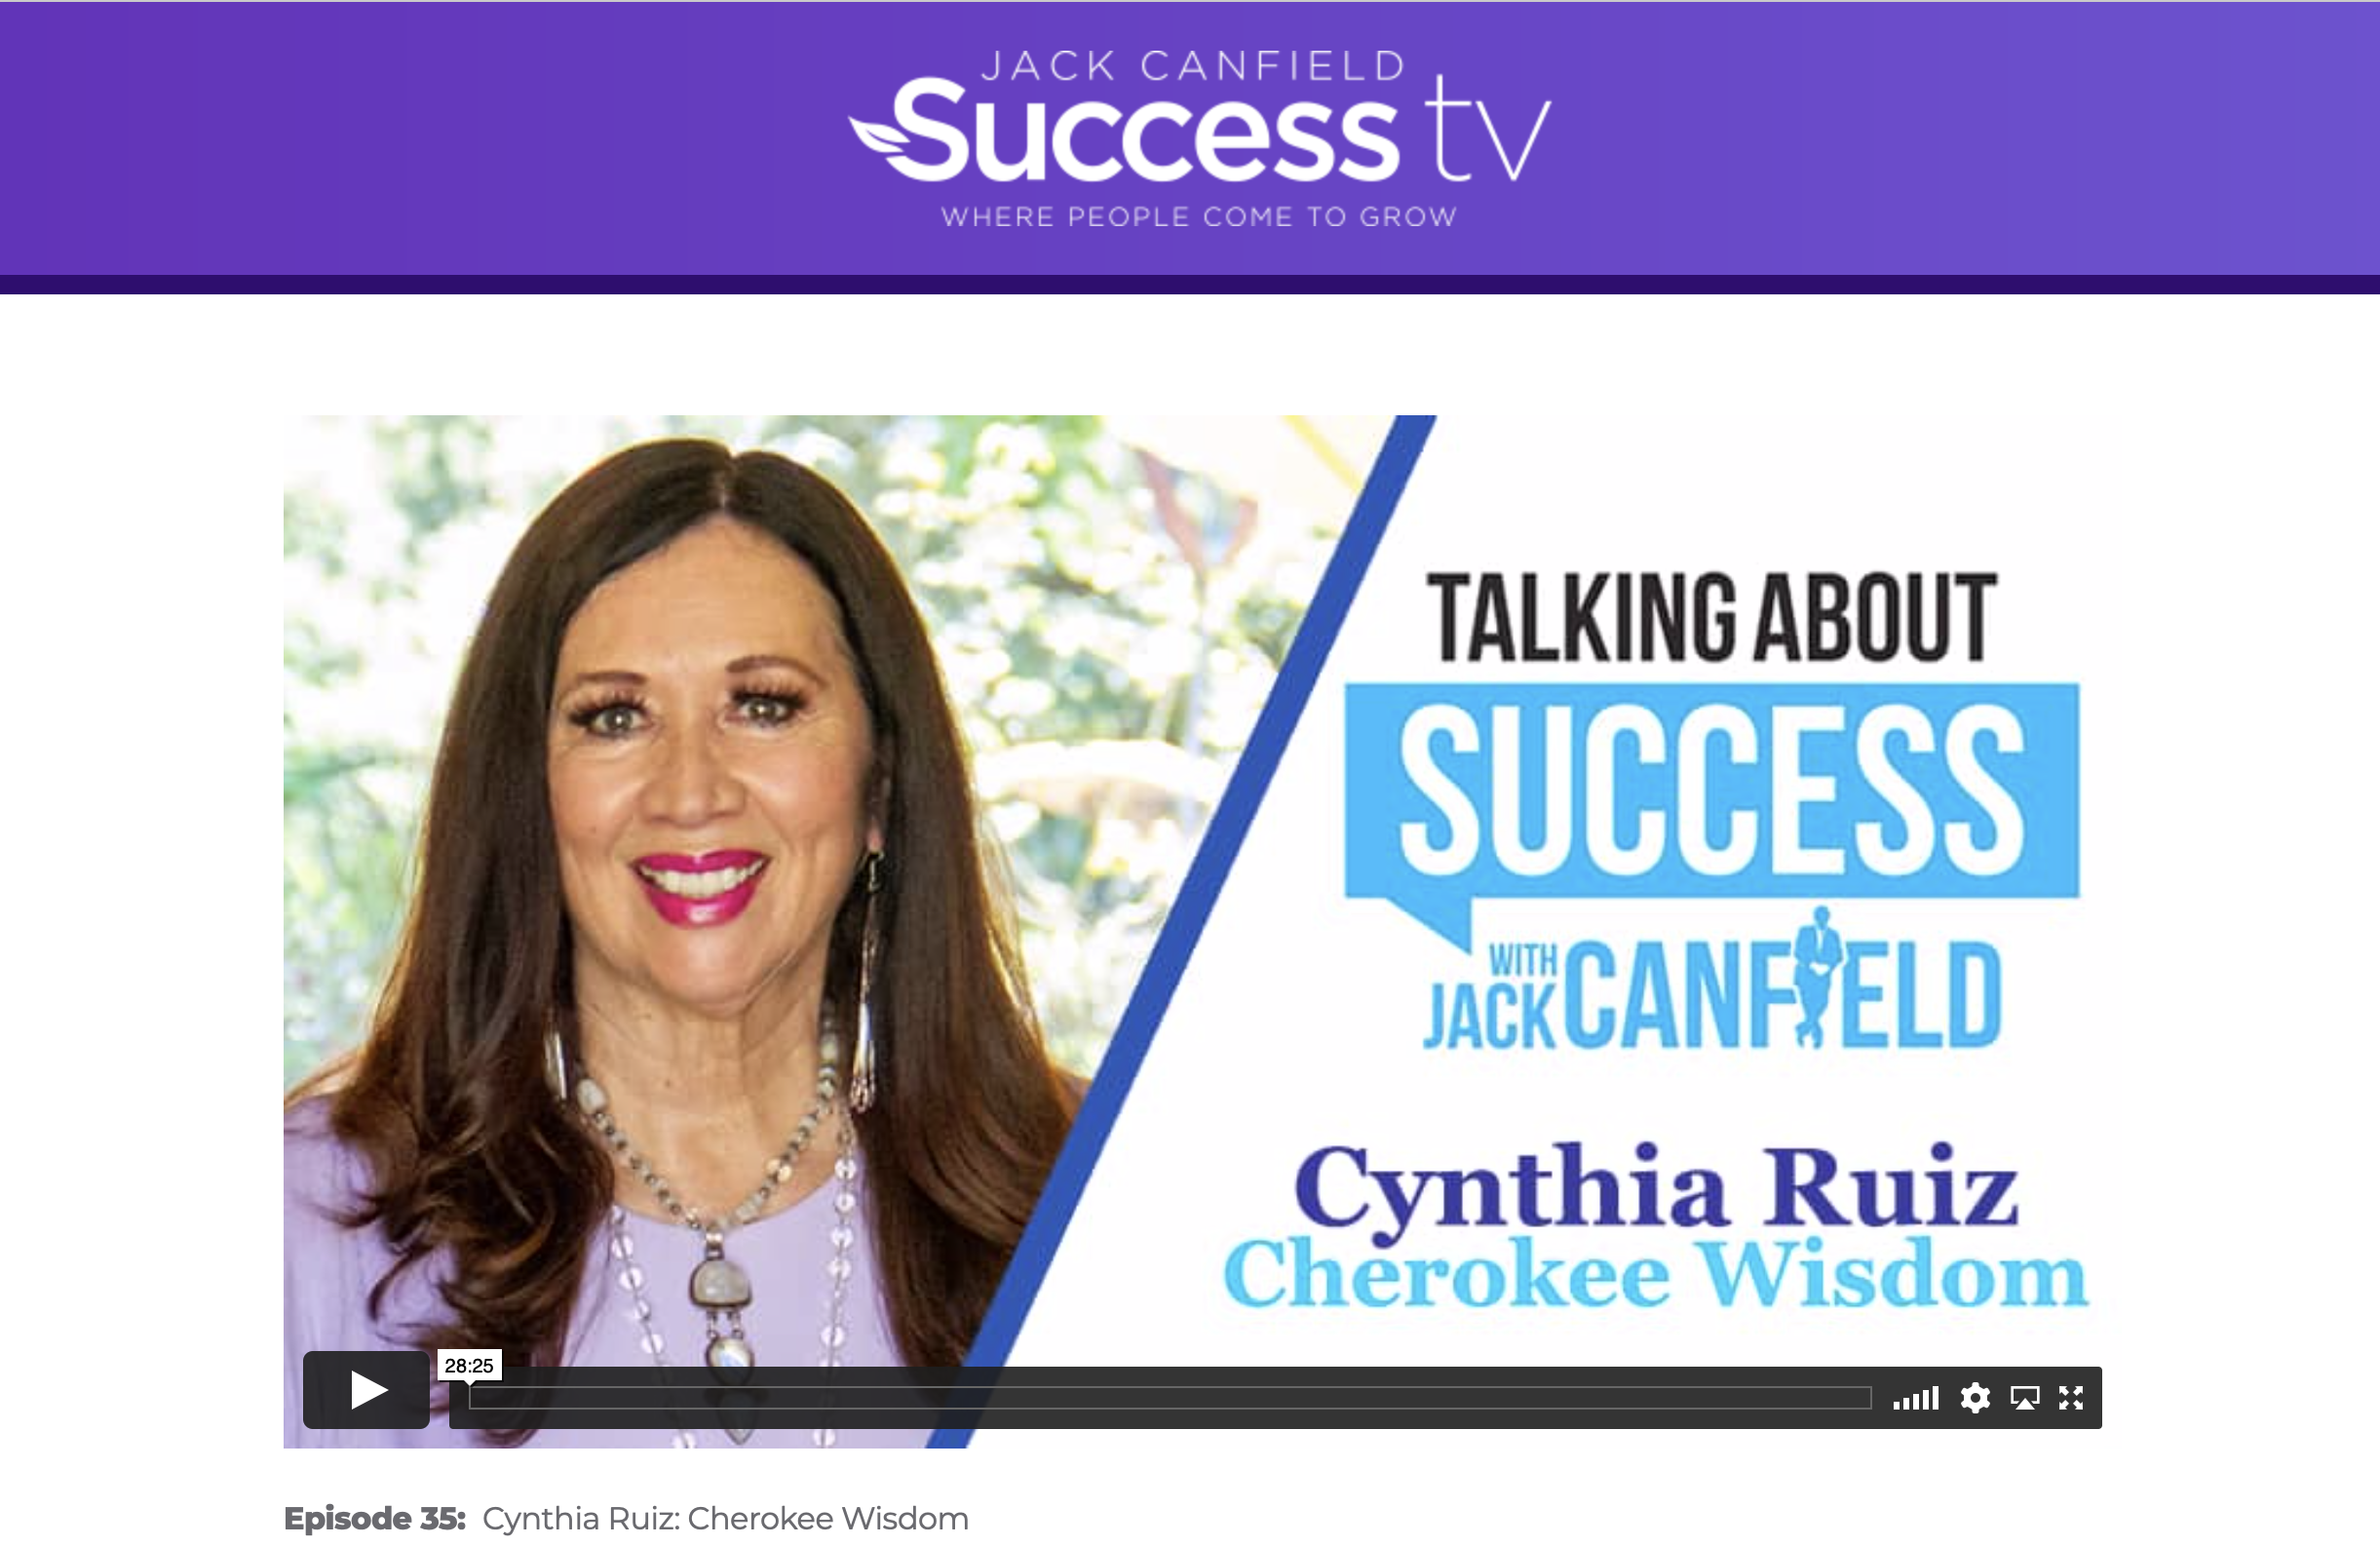 Check out my interview with Jack Canfield on his Talking about Success TV show